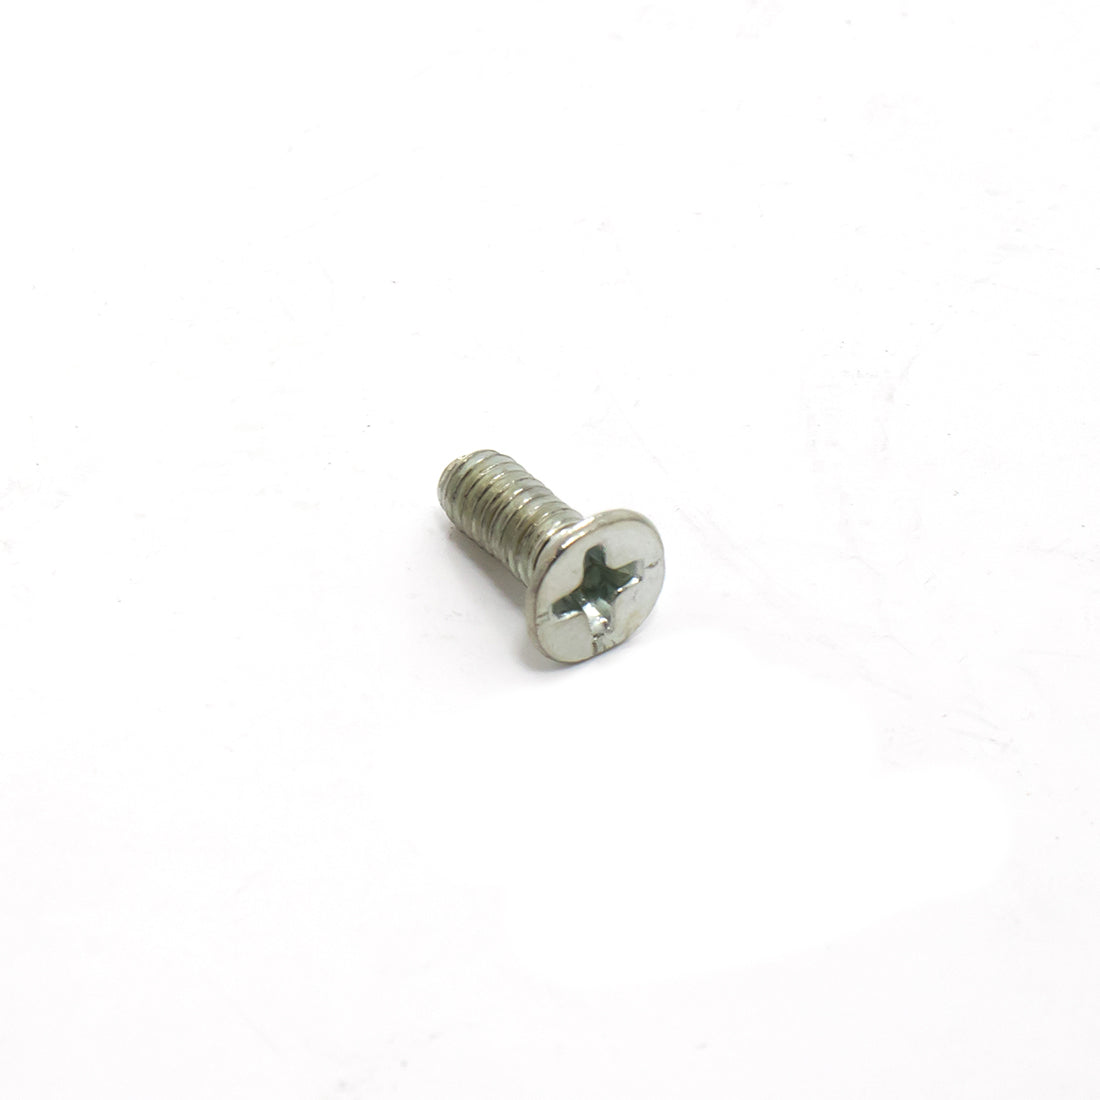 [MBA-032] M4X10 bolt - (For Polisher)